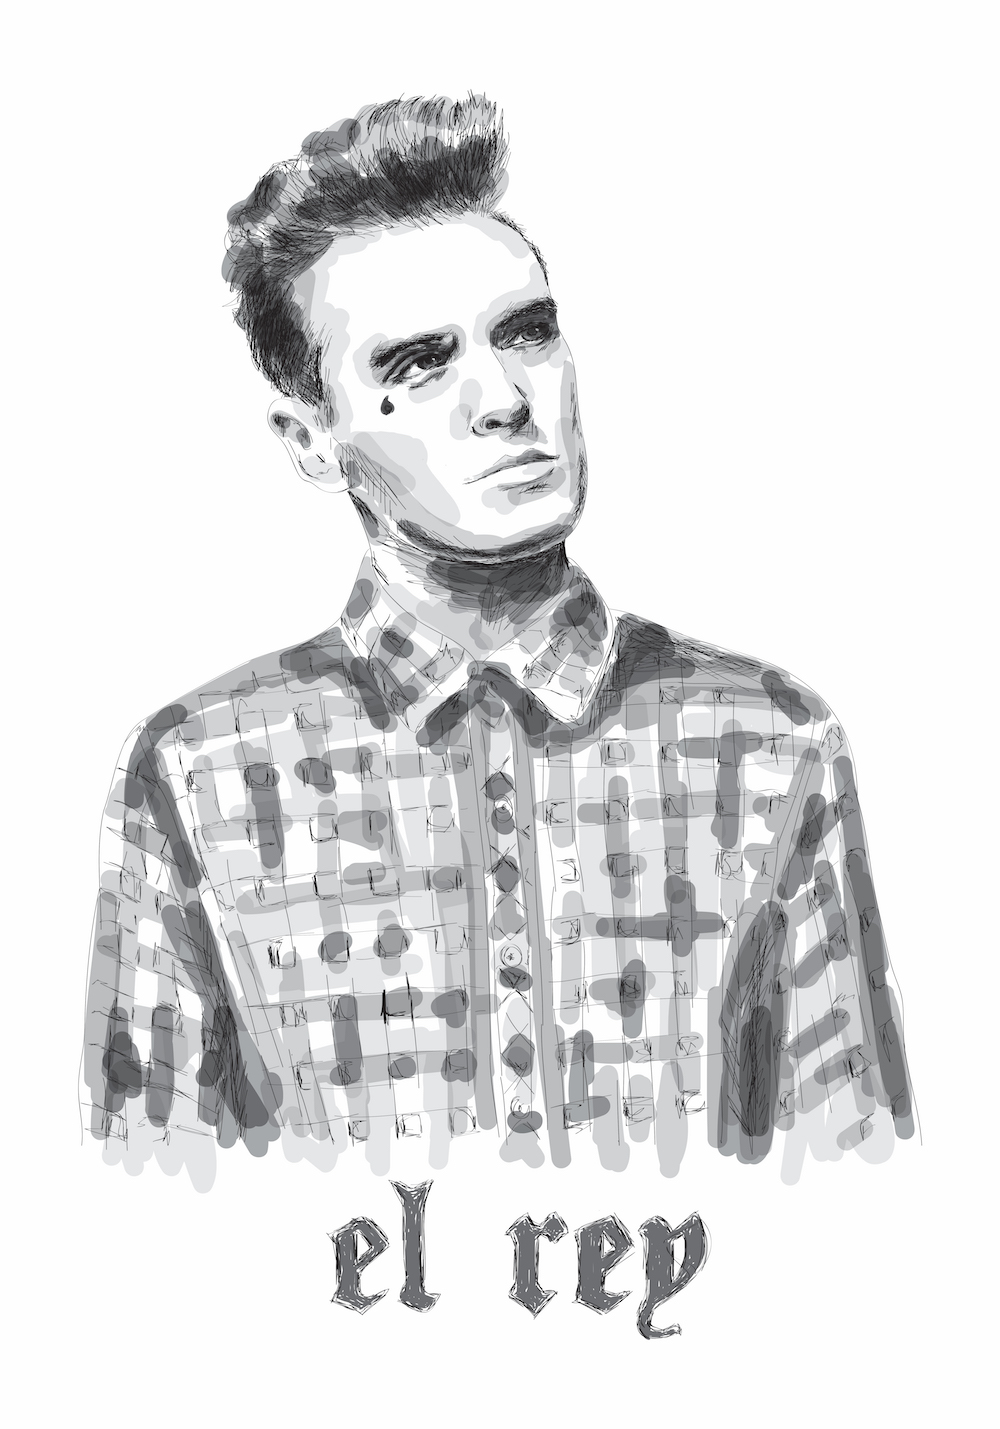 el rey - portrait of chicano morrissey, famous singer and frontman of the smiths.